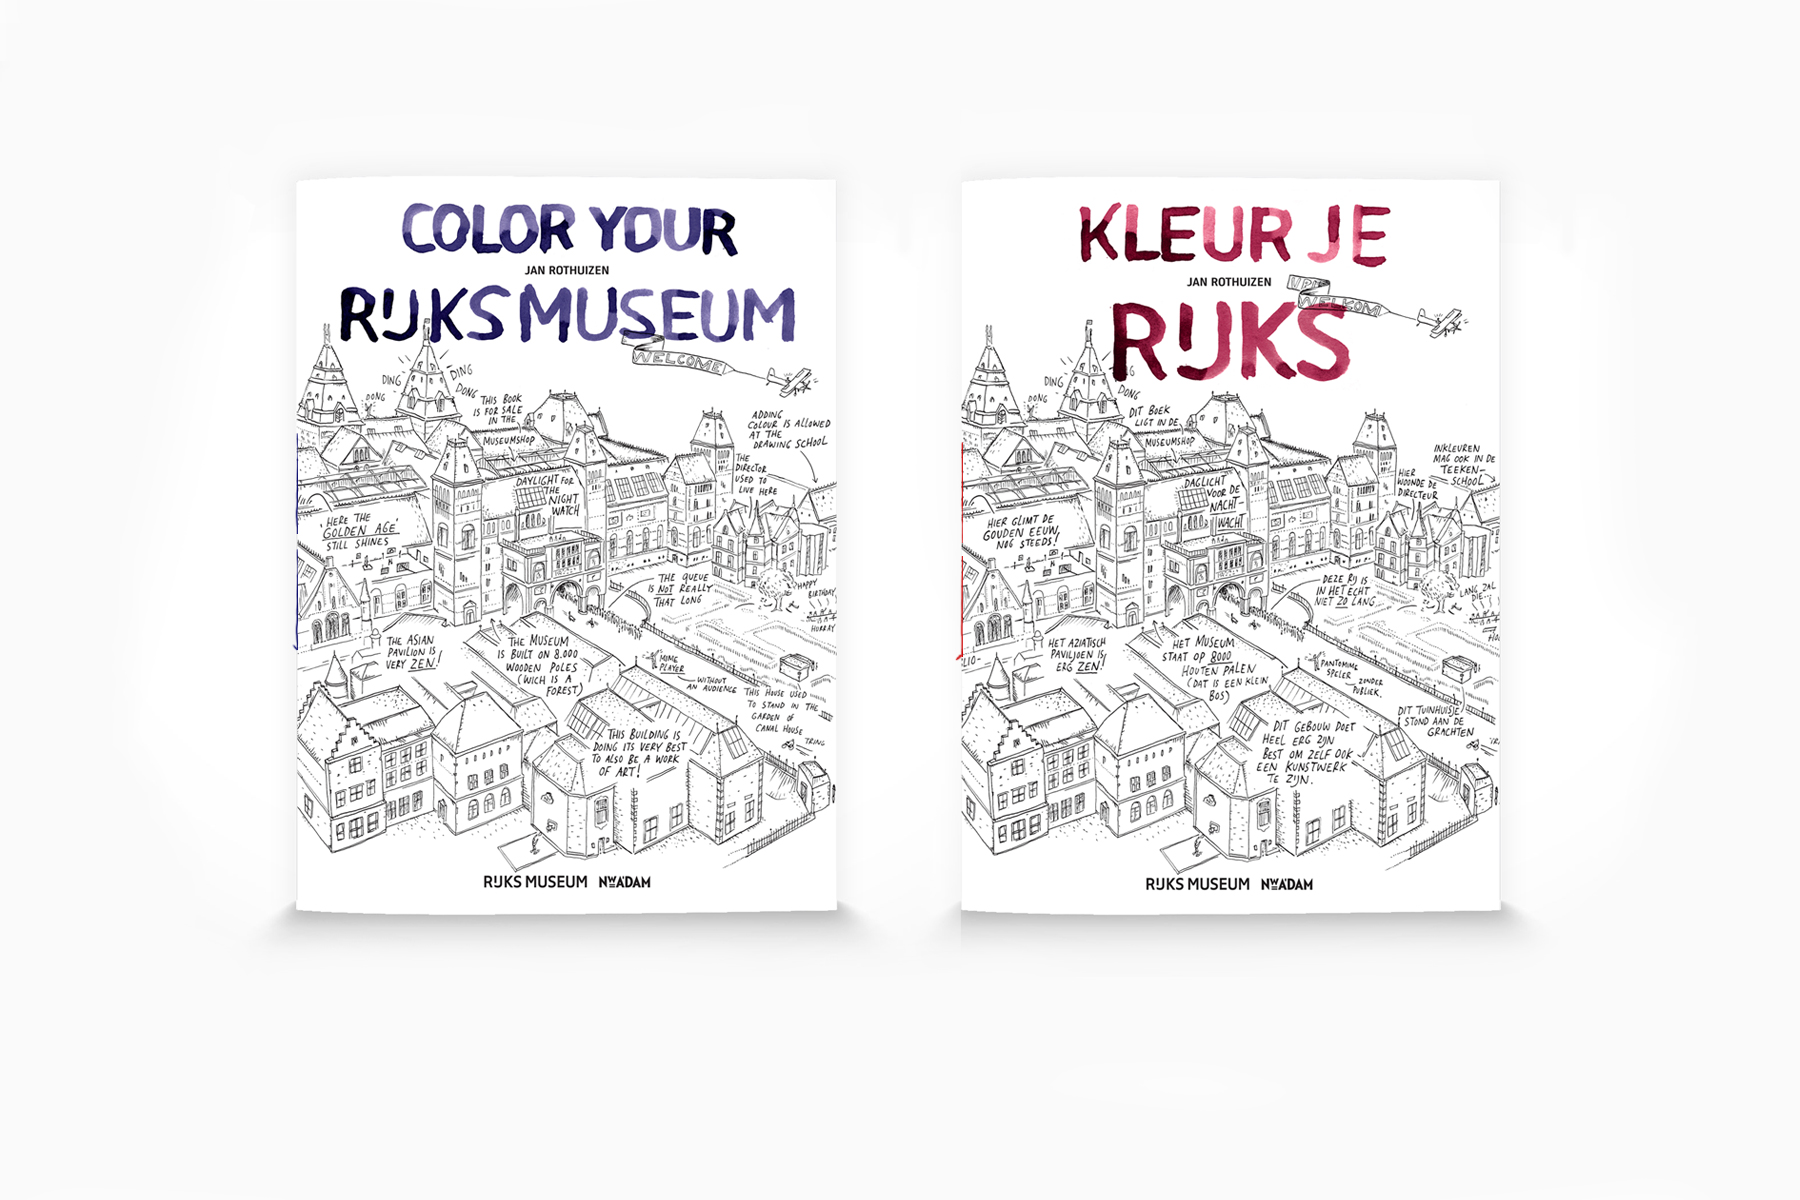 JAN ROTHUIZEN-Color your Rijksmuseum